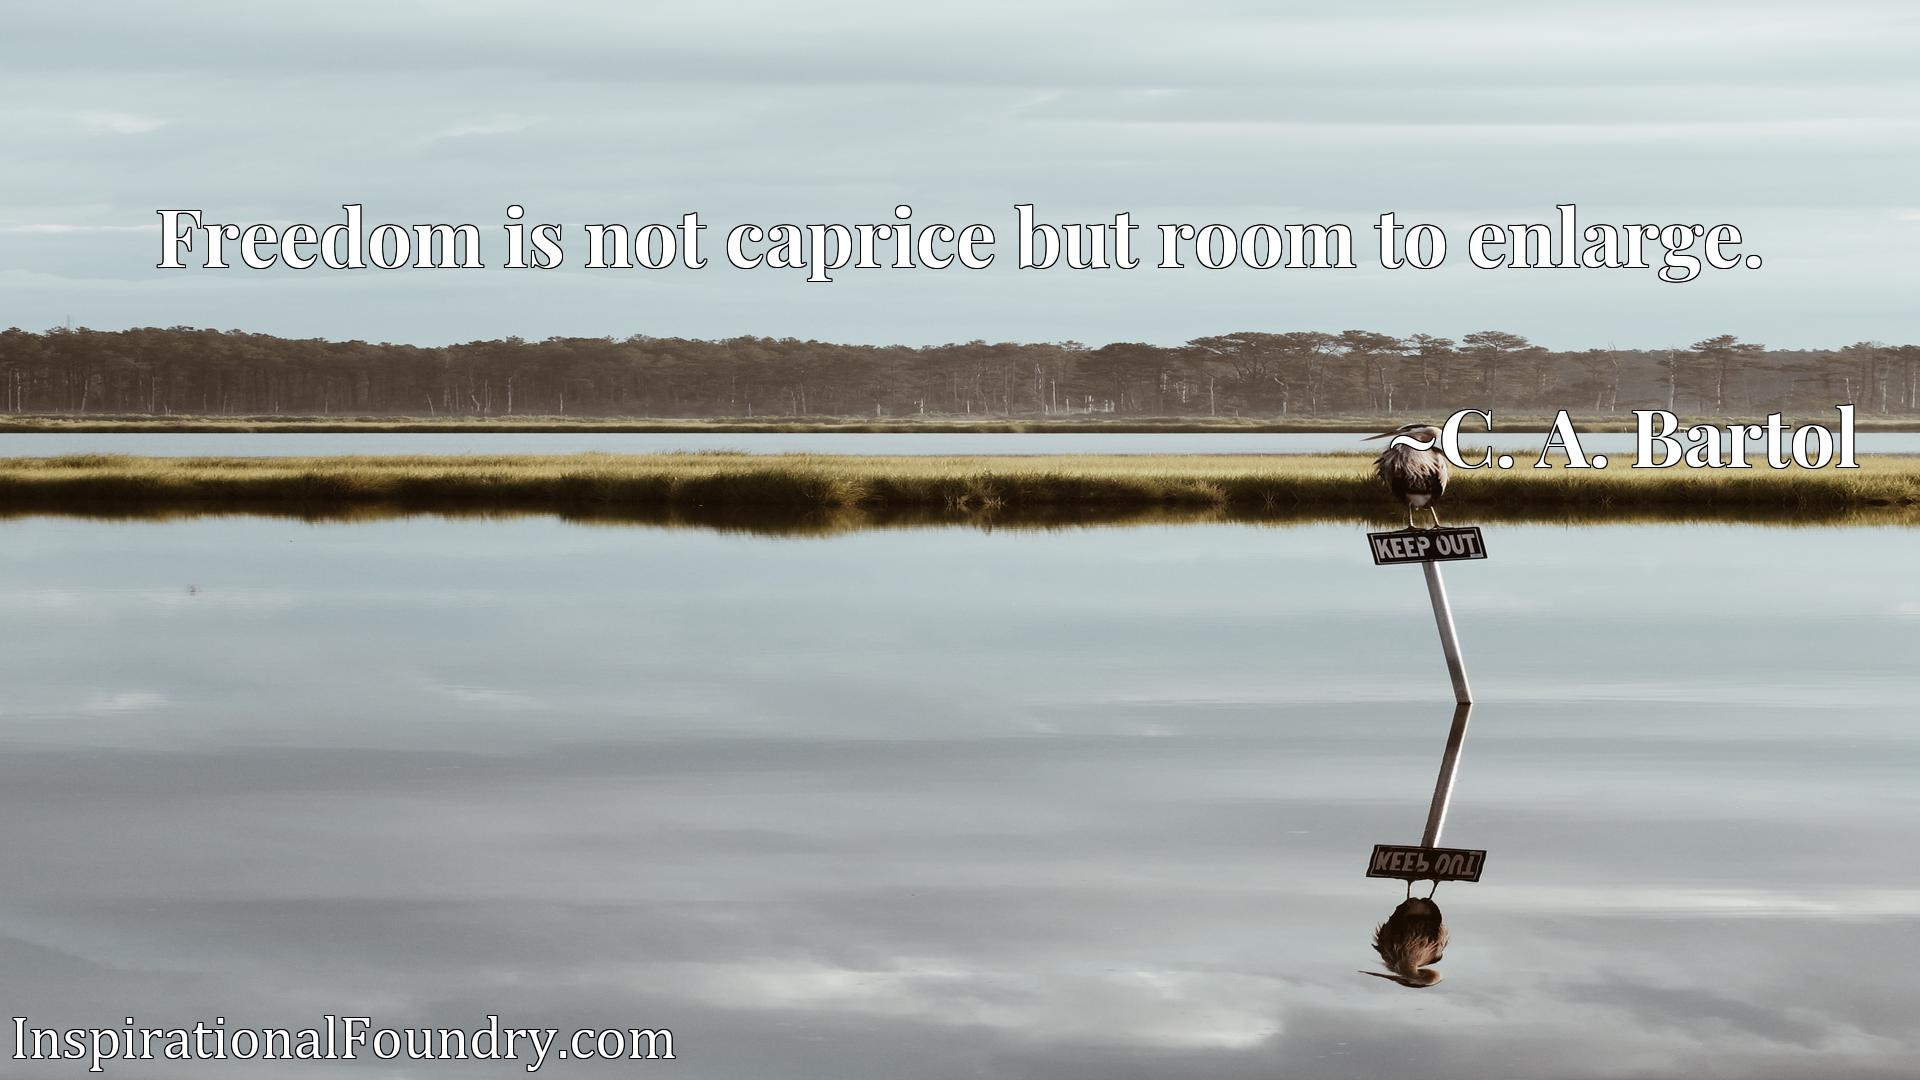 Freedom is not caprice but room to enlarge.